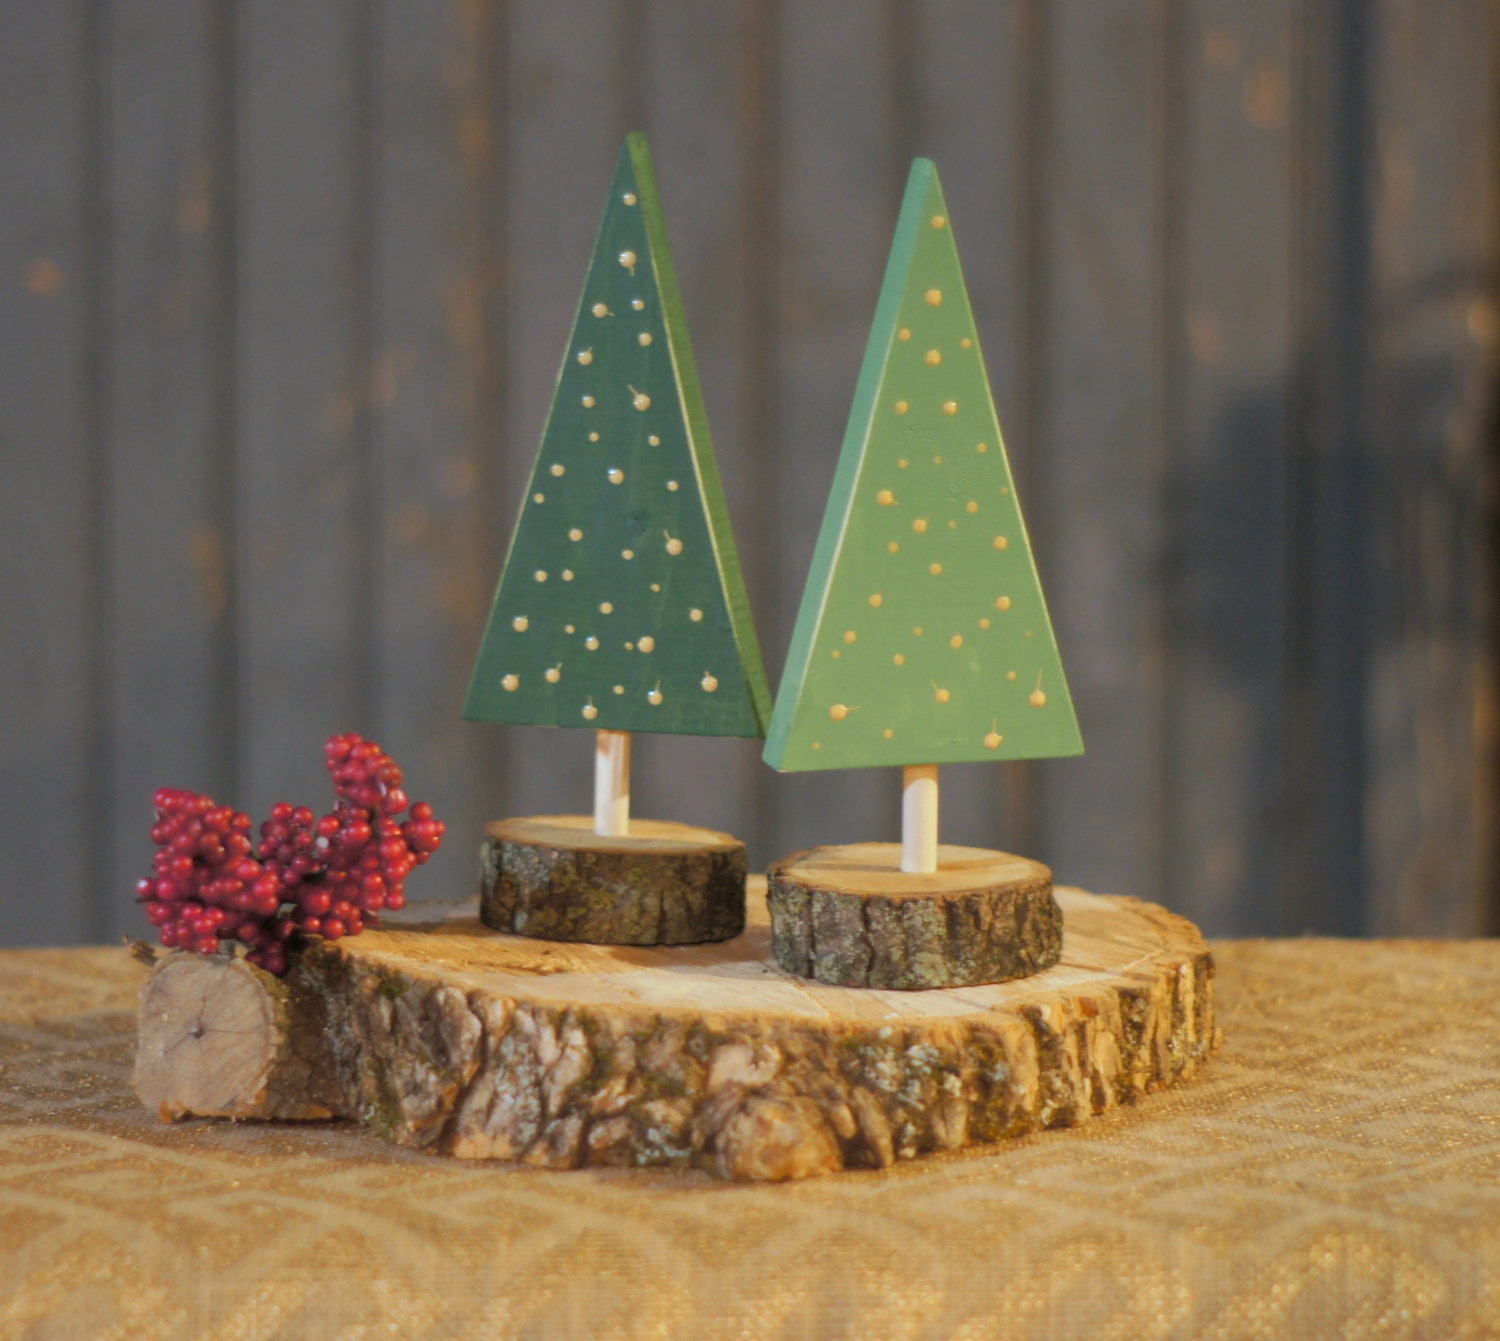 Christmas Tree From Wood: Wooden Tree Rustic Christmas Tree Decor By GFTWoodcraft On